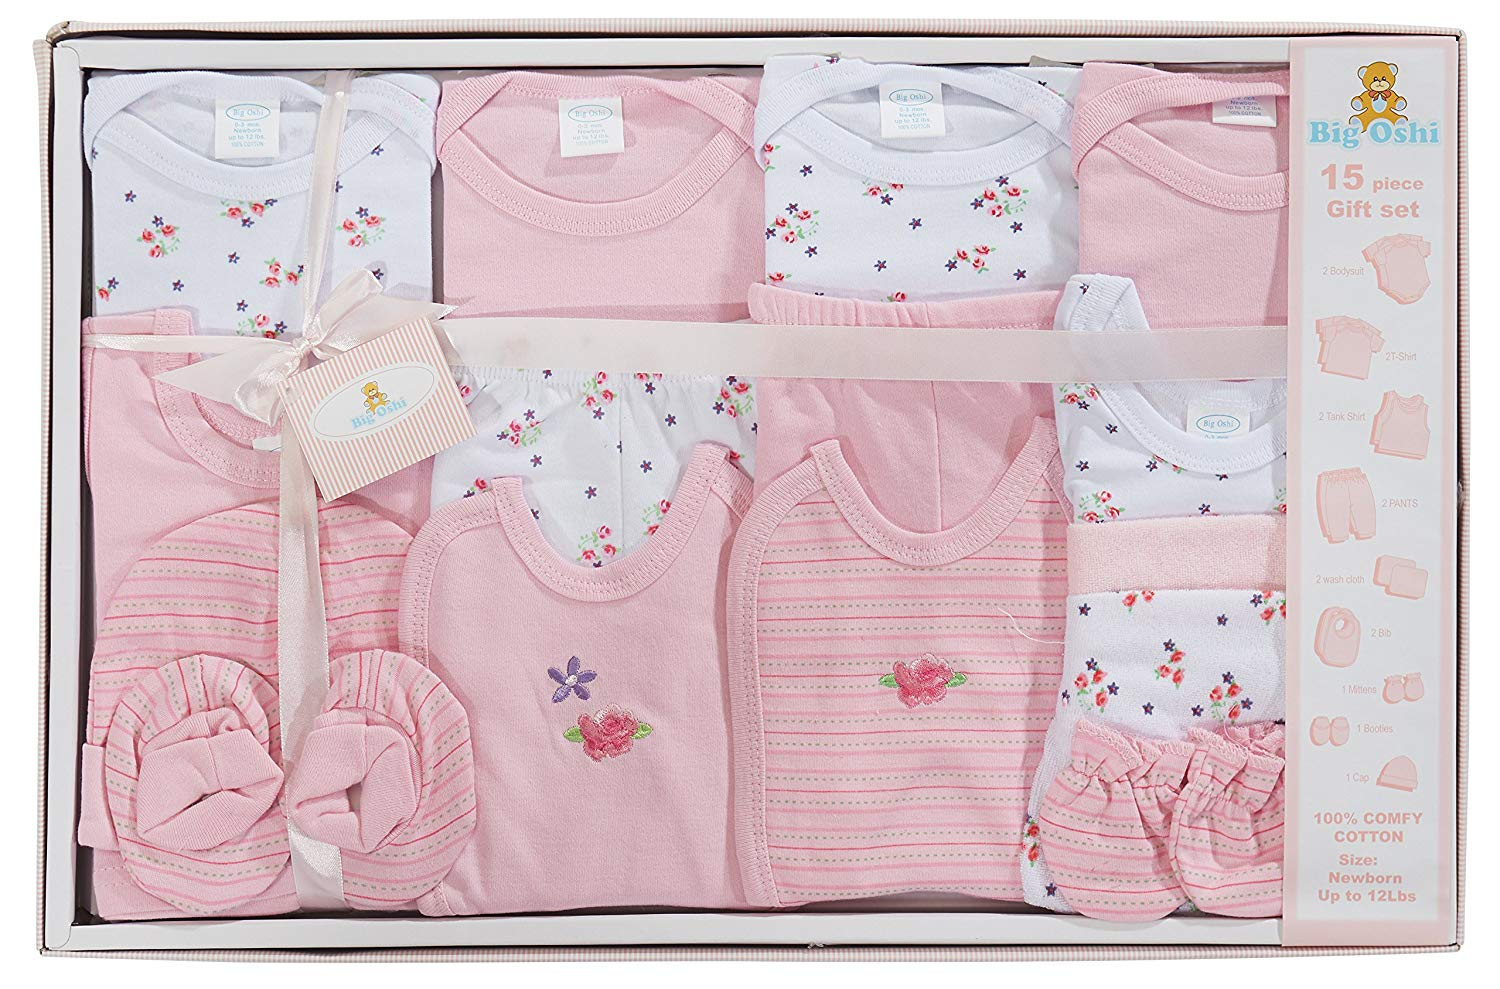 Big Oshi 15 Piece Layette Newborn Baby Gift Set for Girls - Great Baby Shower or Registry Gift Box to Welcome a New Arrival - All Essentials Including: Bodysuits, Shirts, Pants, Bibs, and More, Pink